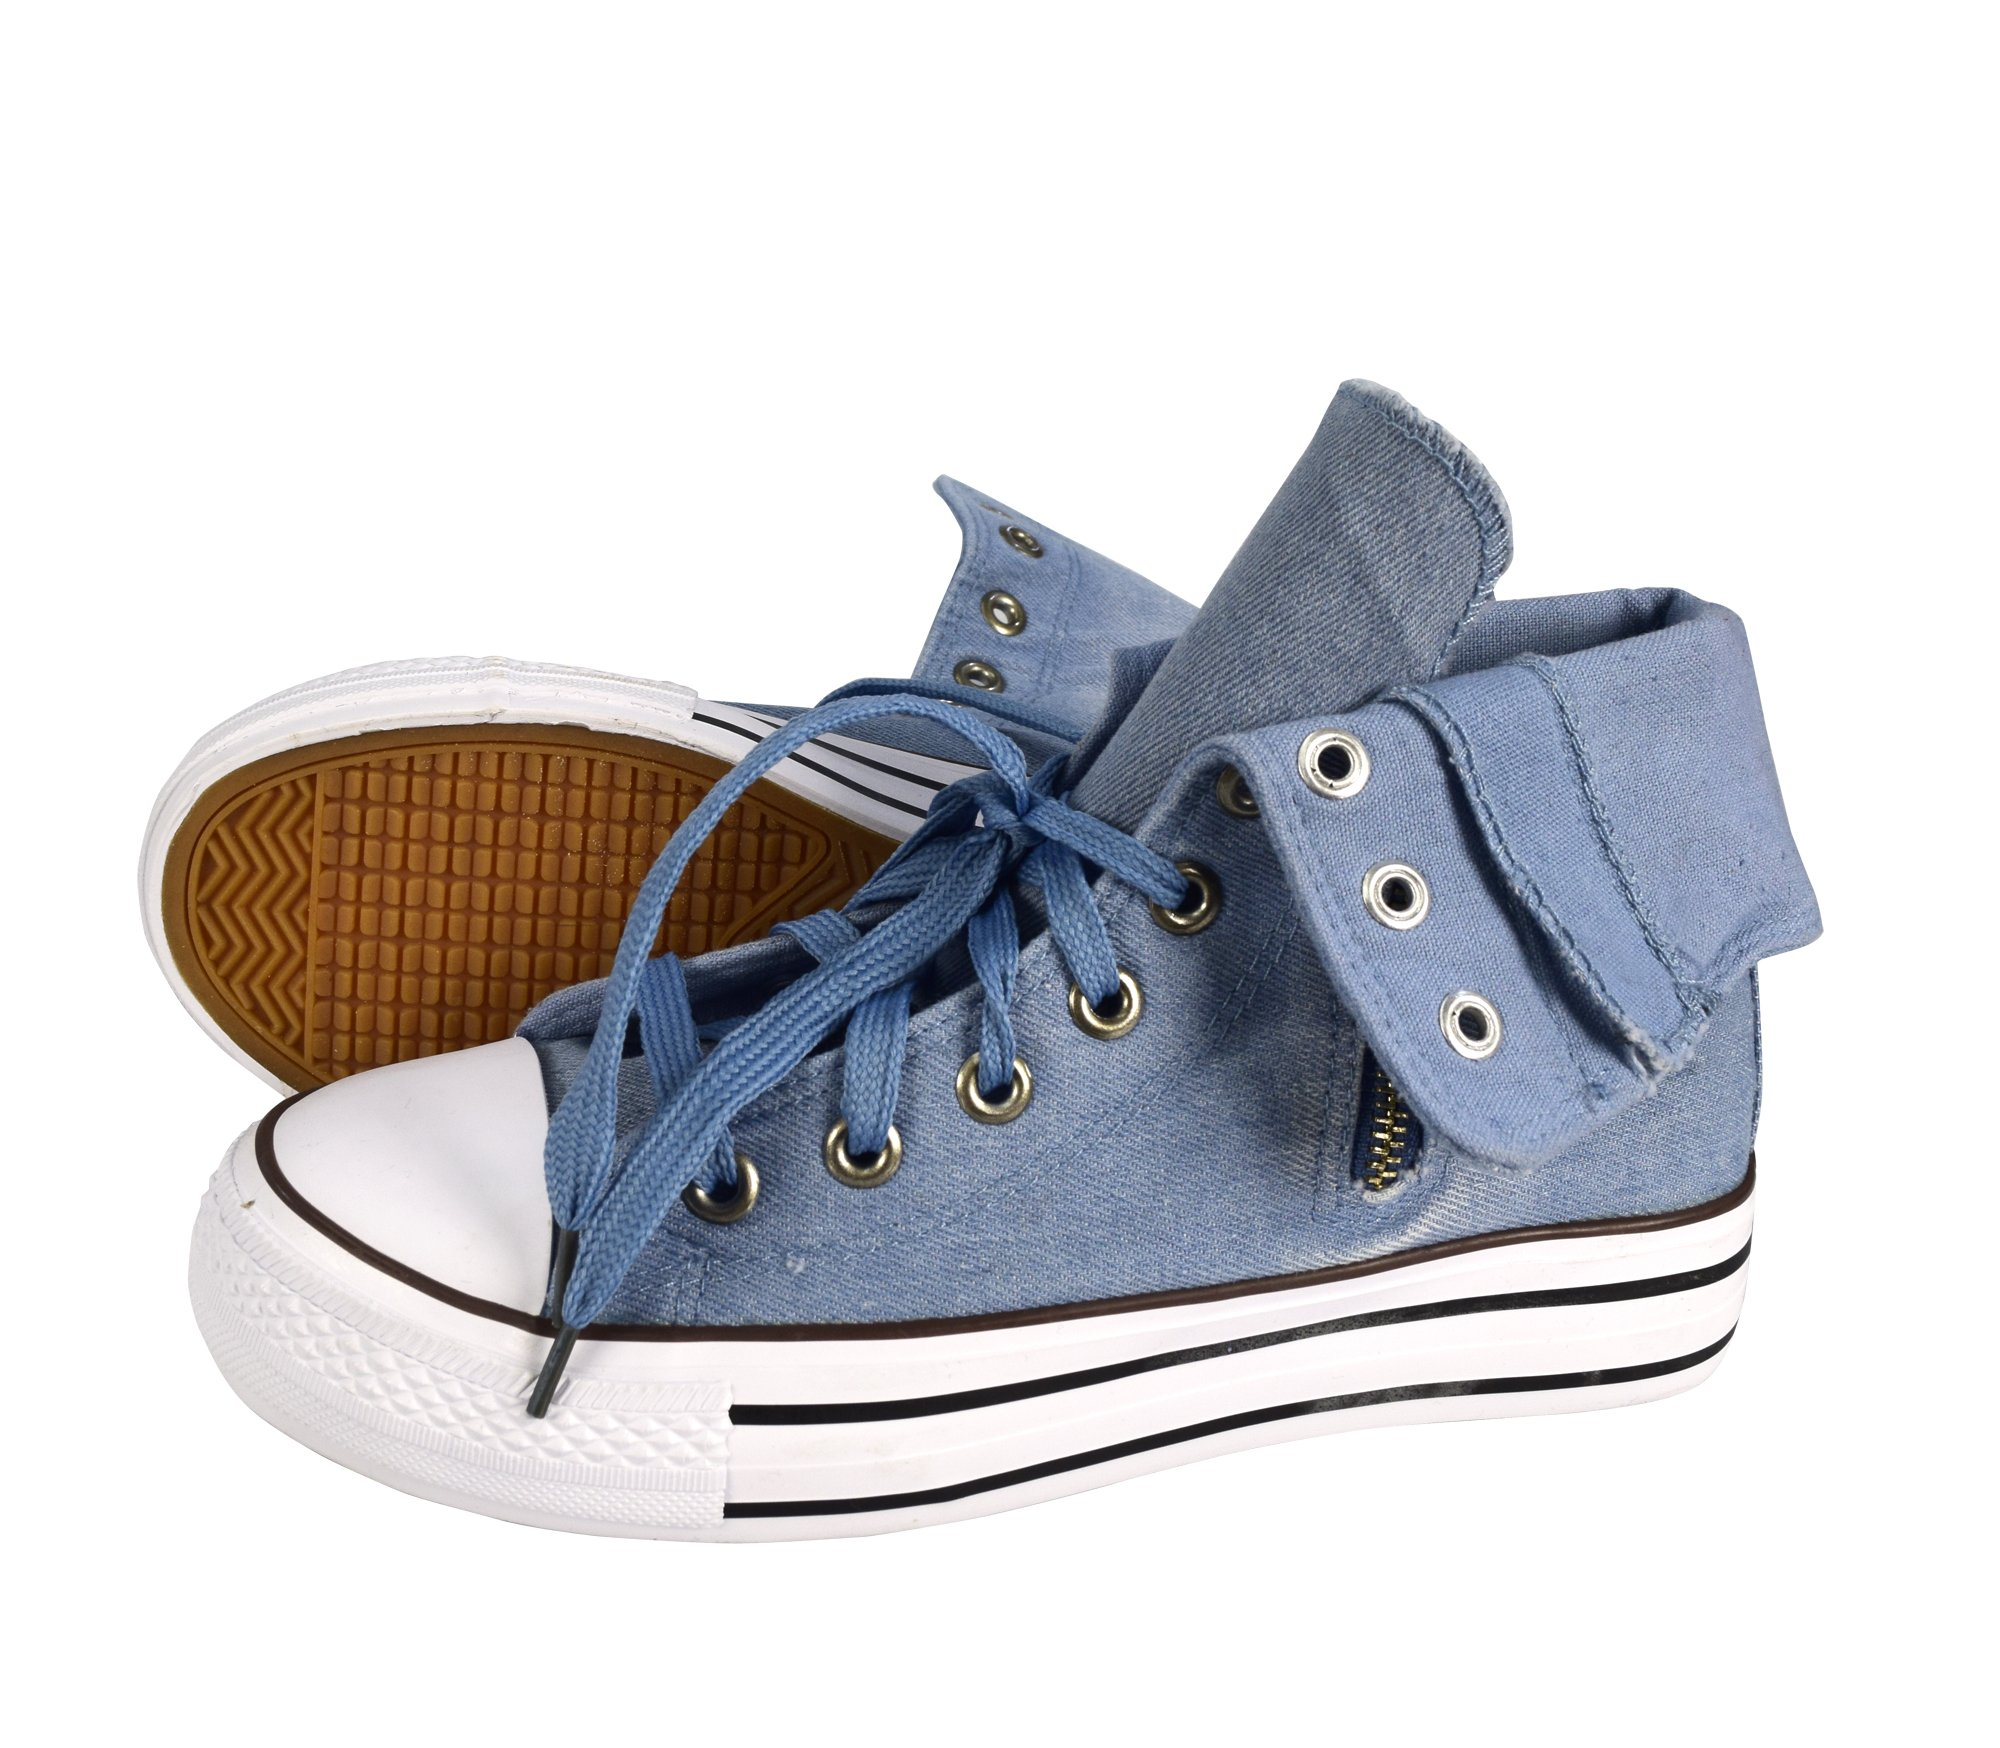 Peach Couture Taylor Fold Over Side Zipper Canvas High Top Sneaker Shoes Light Blue, 10 by Peach Couture (Image #2)